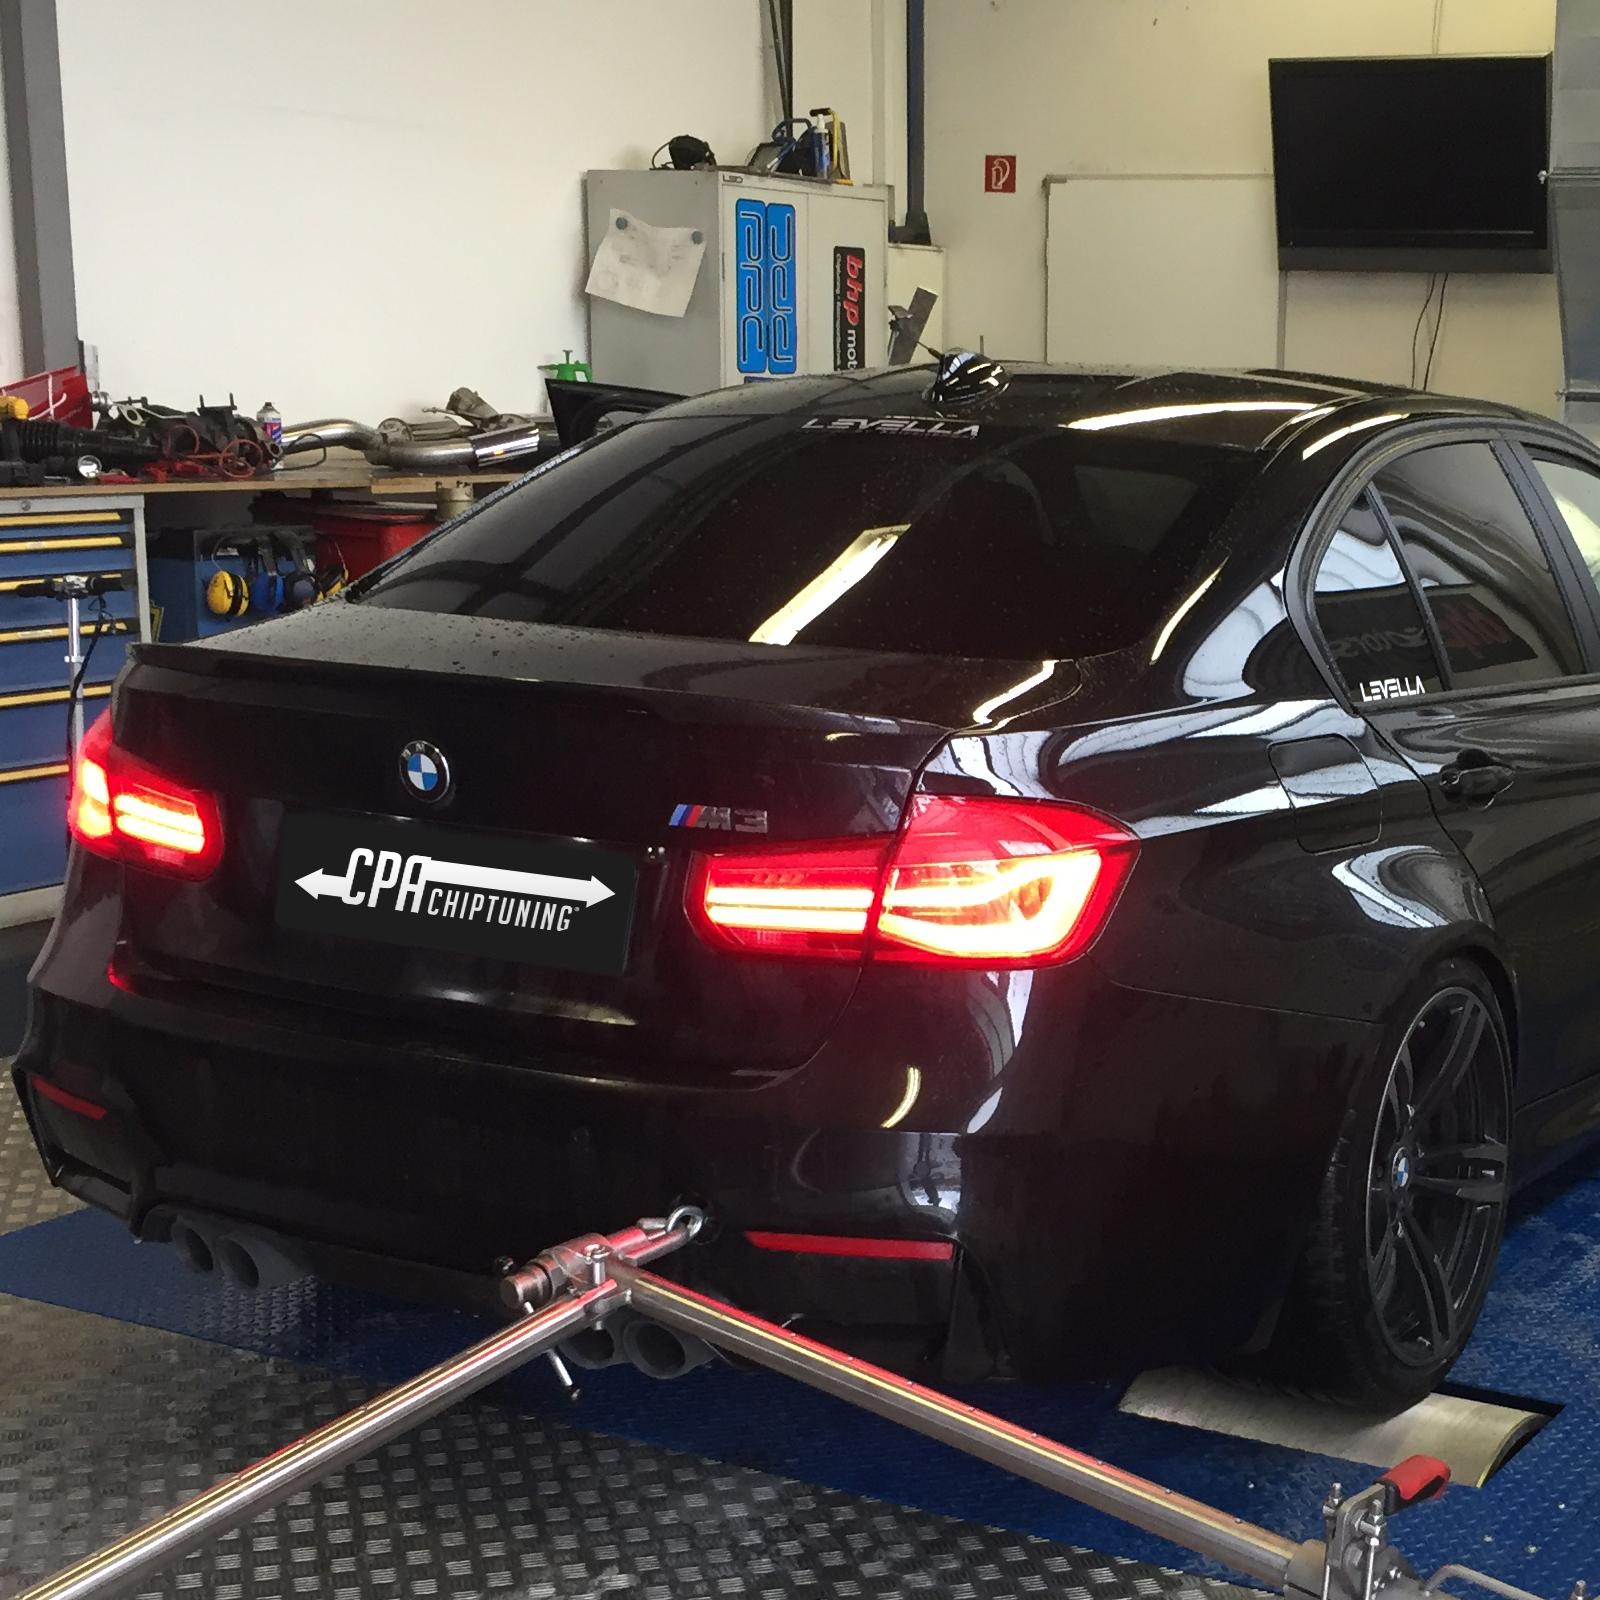 为the new BMW M3开发chiptuing